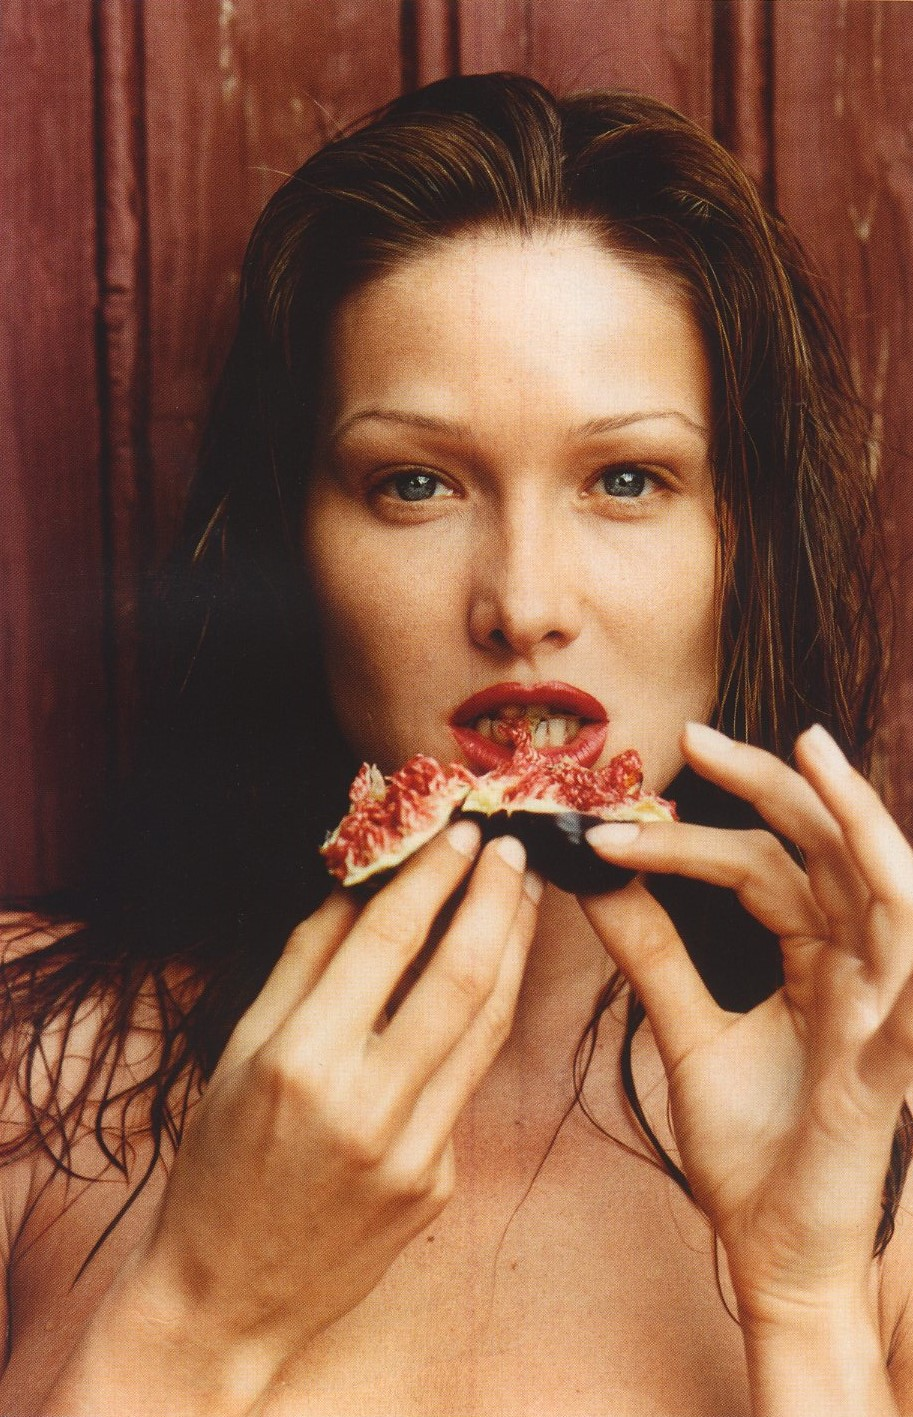 carla bruni photography helmut newton august 1992 vogue paris n933 december 2012 january 2013